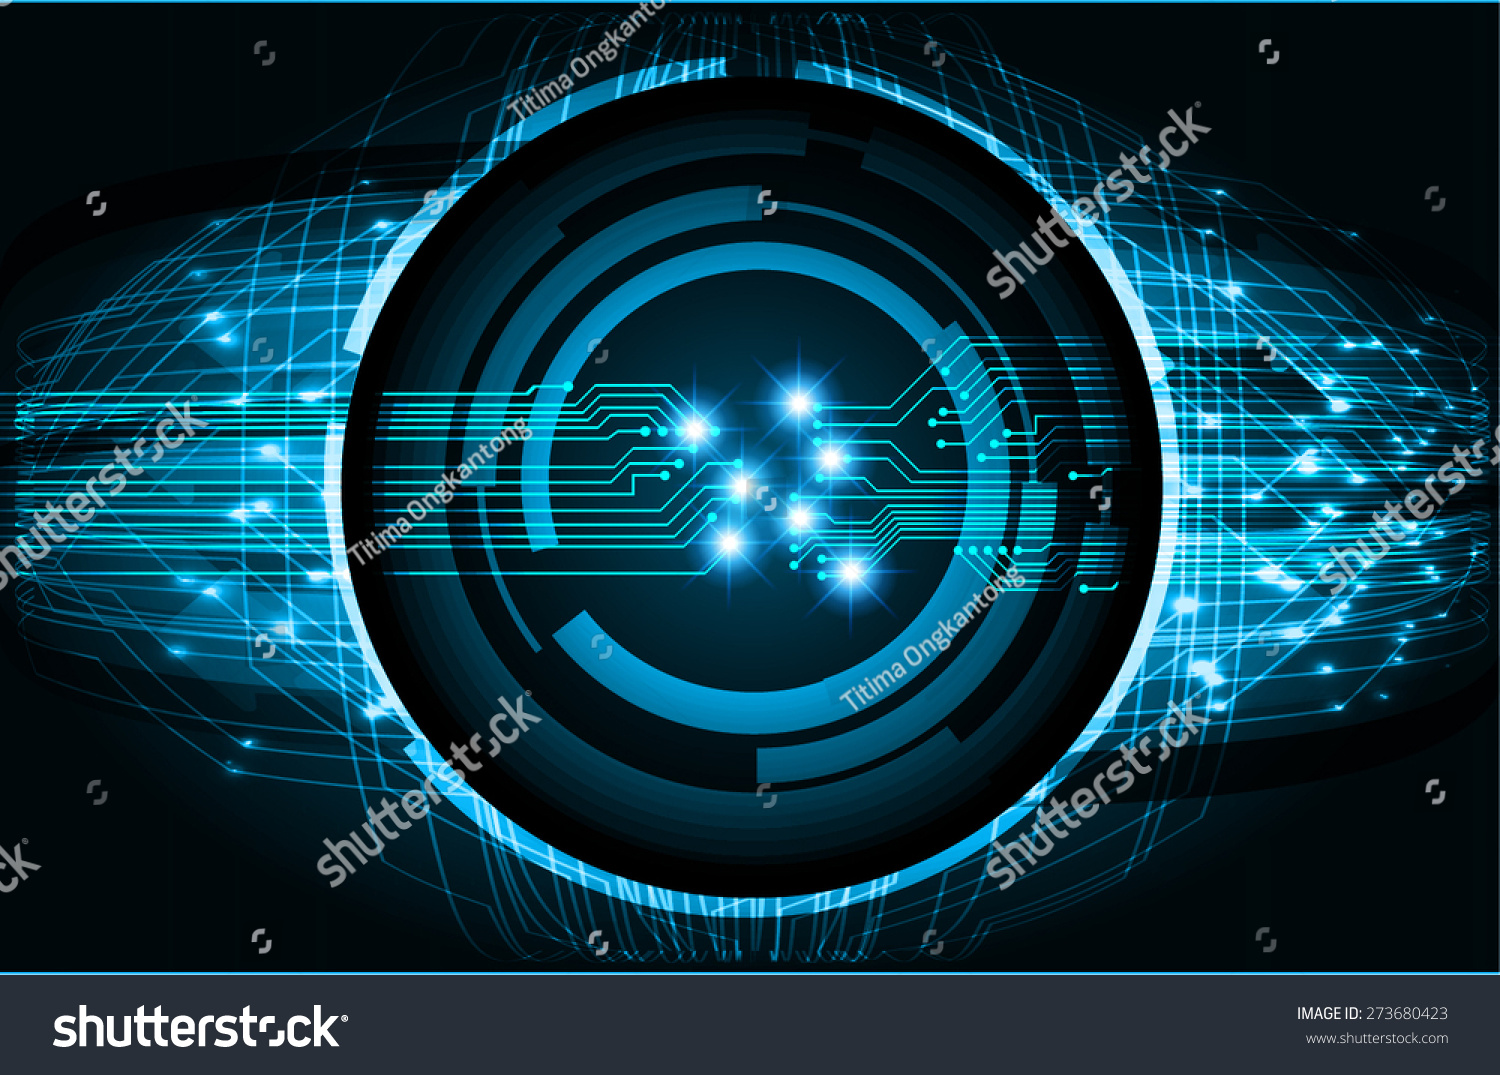 Abstract Circuit Board Background By Silvertiger: Dark Black Color Light Abstract Technology Stock Vector